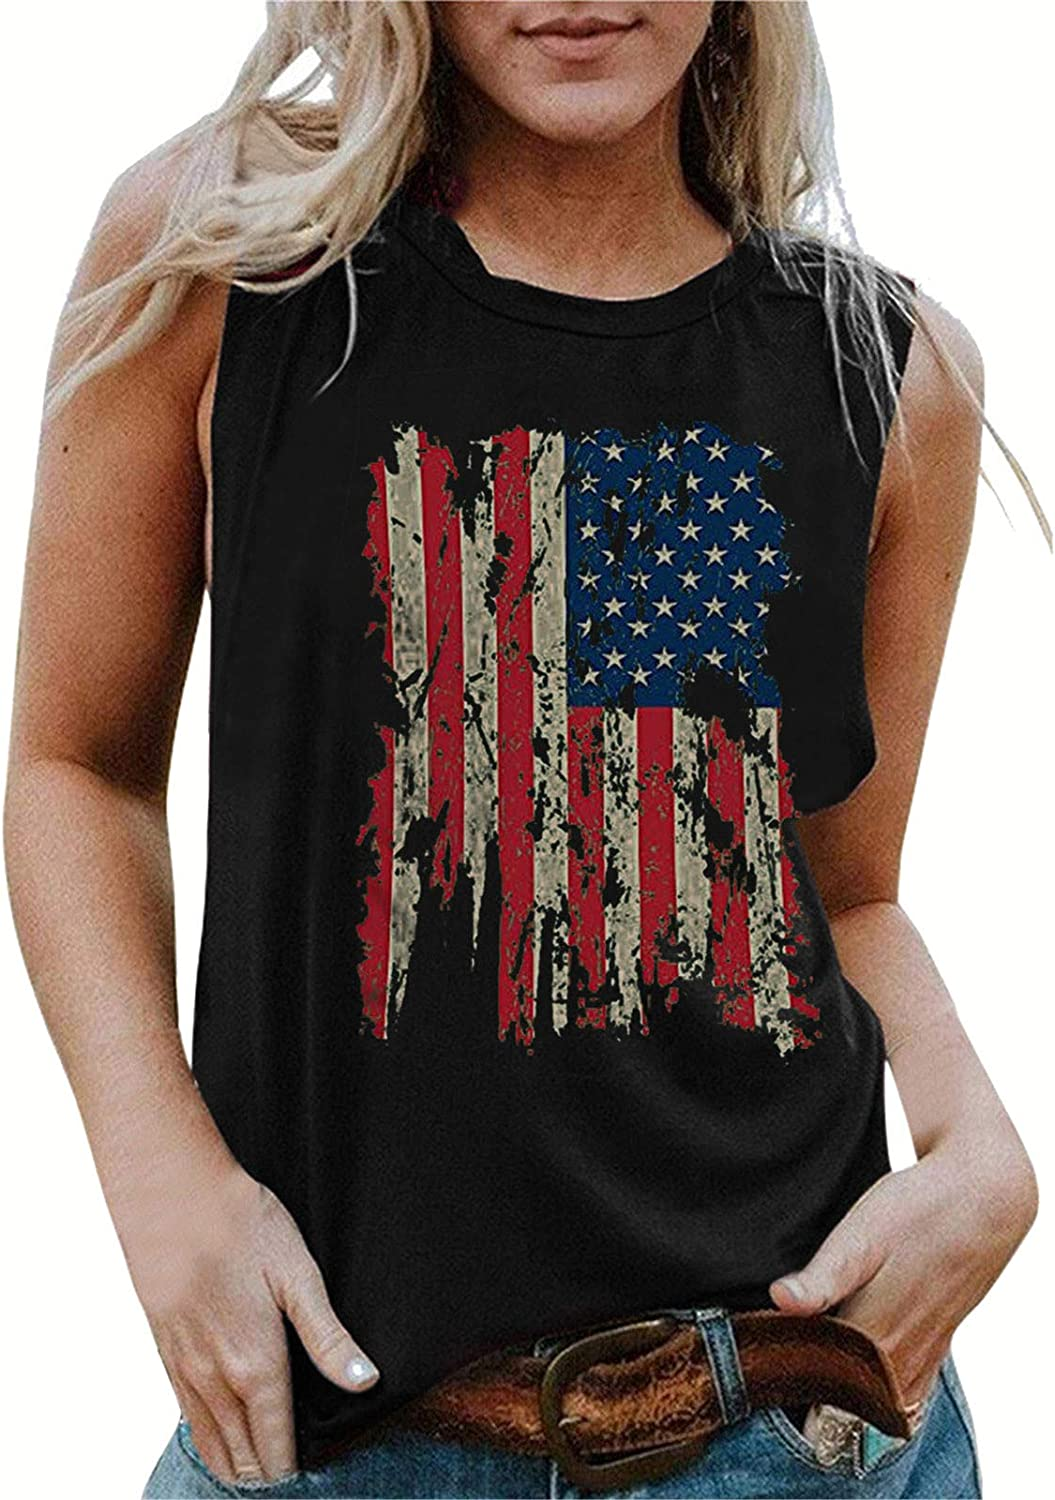 Womens Summer Tops Clearance,Tank Tops Shirts for Women American US Flag Graphic Tank Tops Shirts